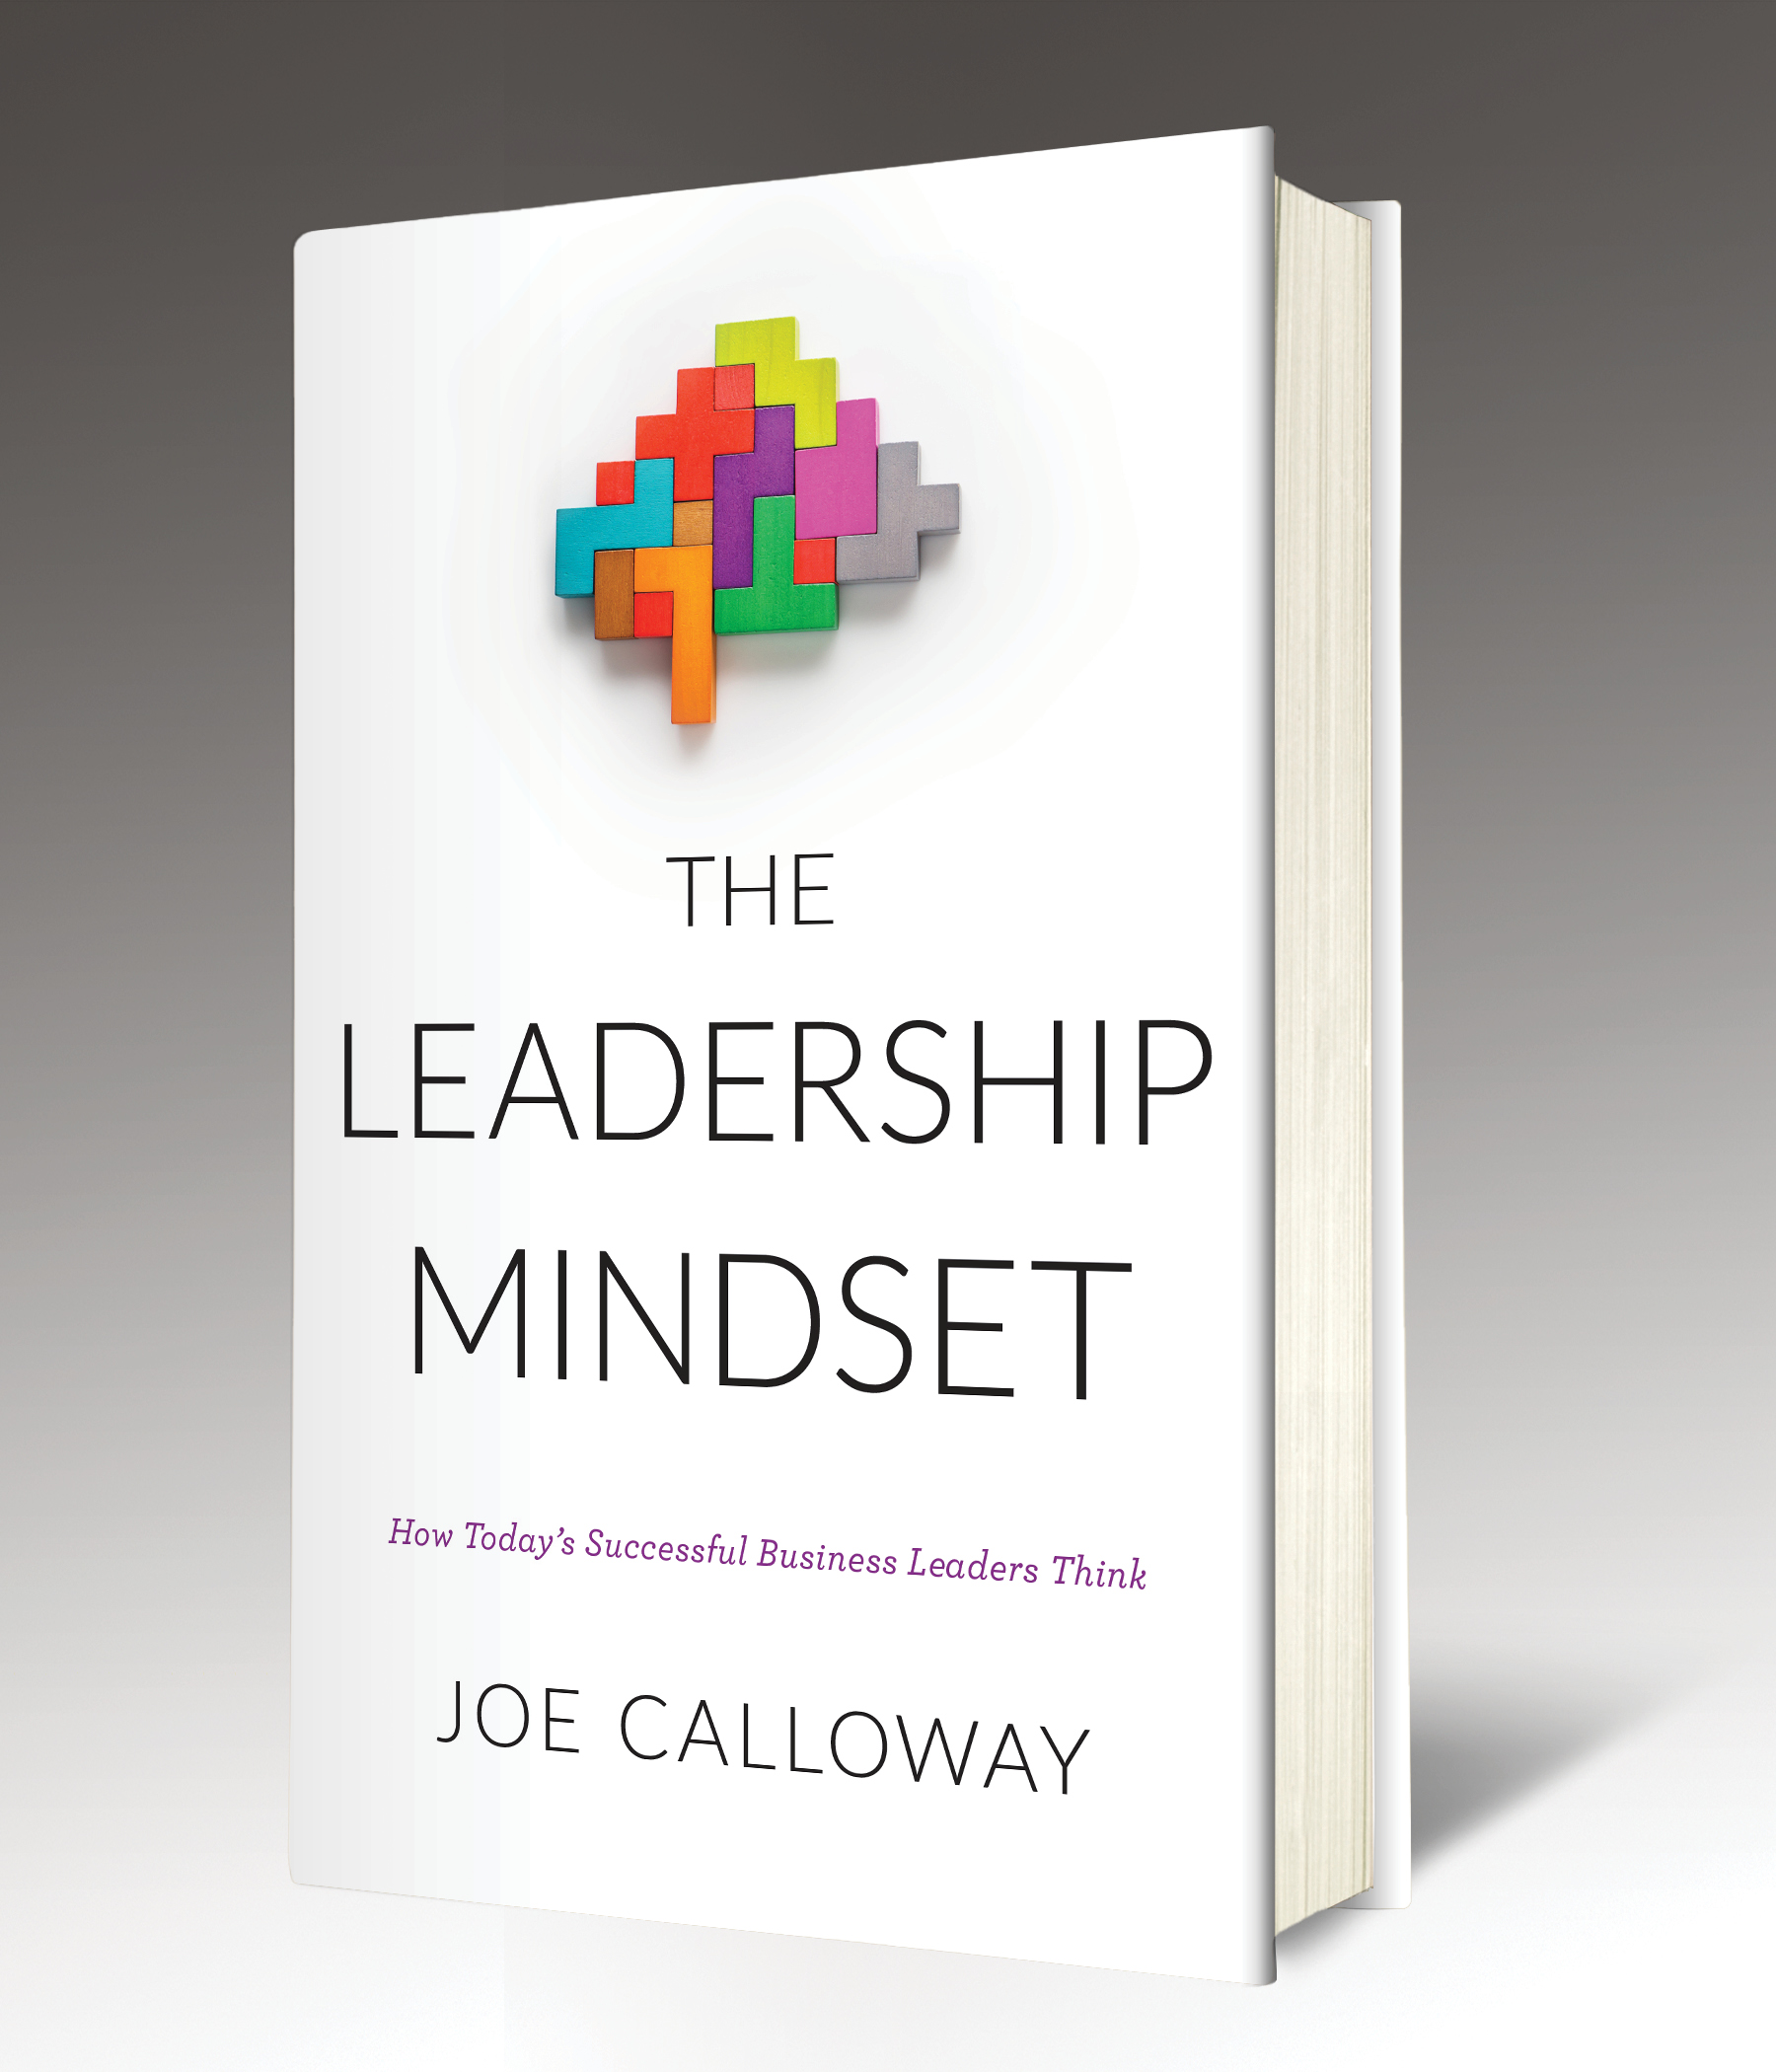 The Leadership Mindset by Joe Calloway